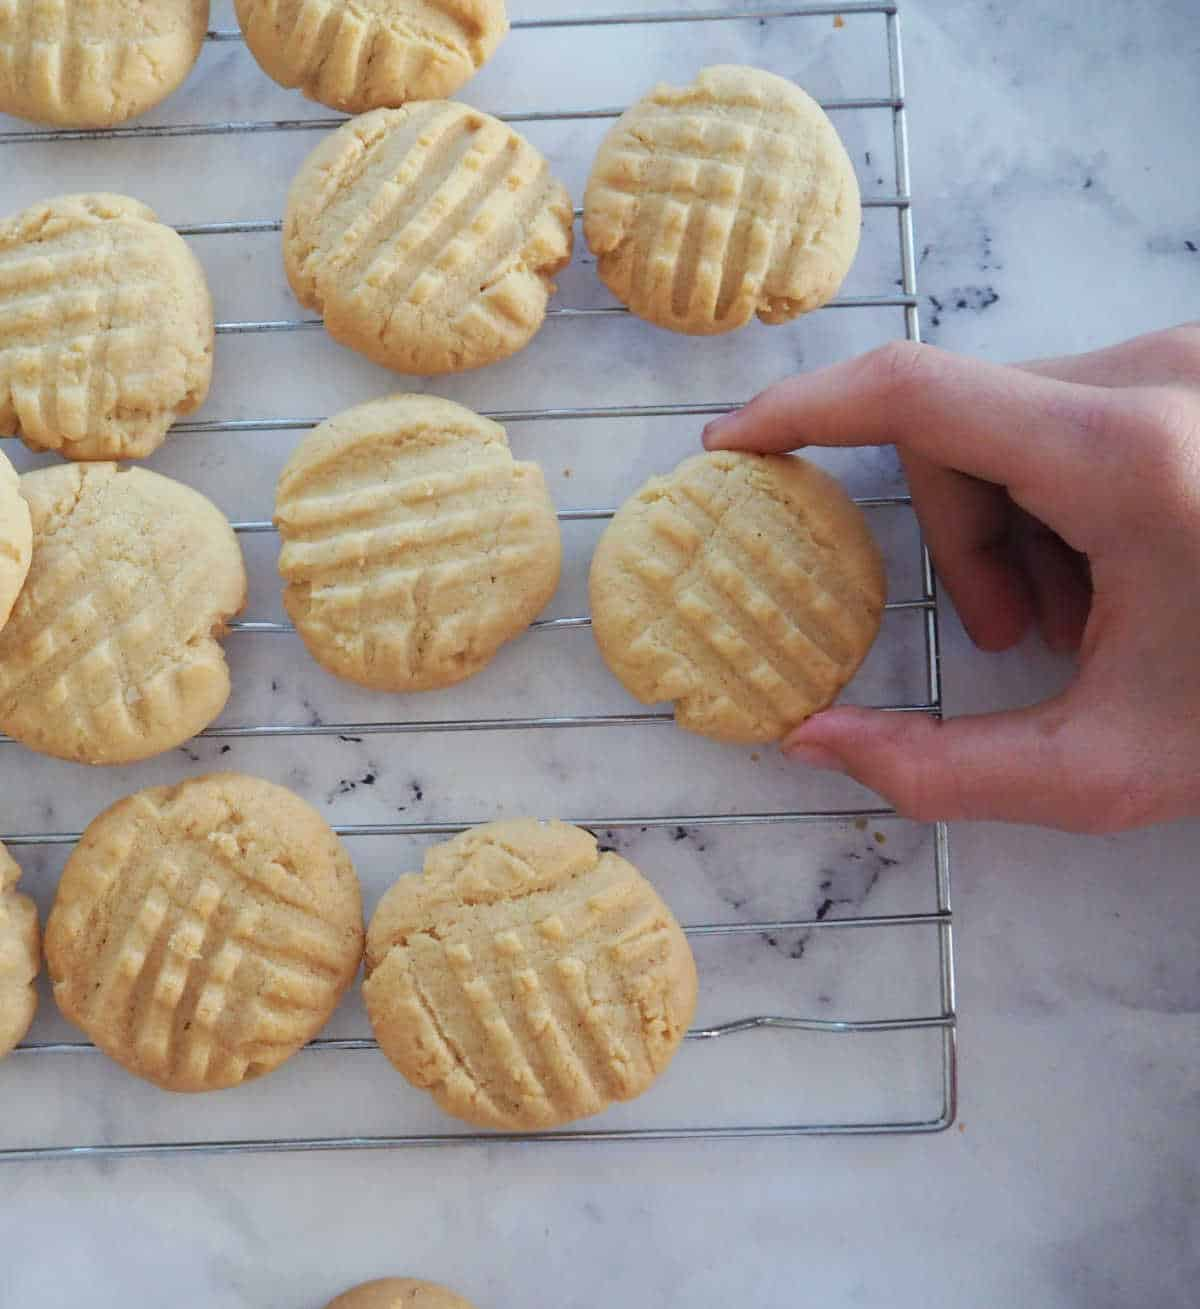 Child picking a peanut butter biscuit off a cooling rack.